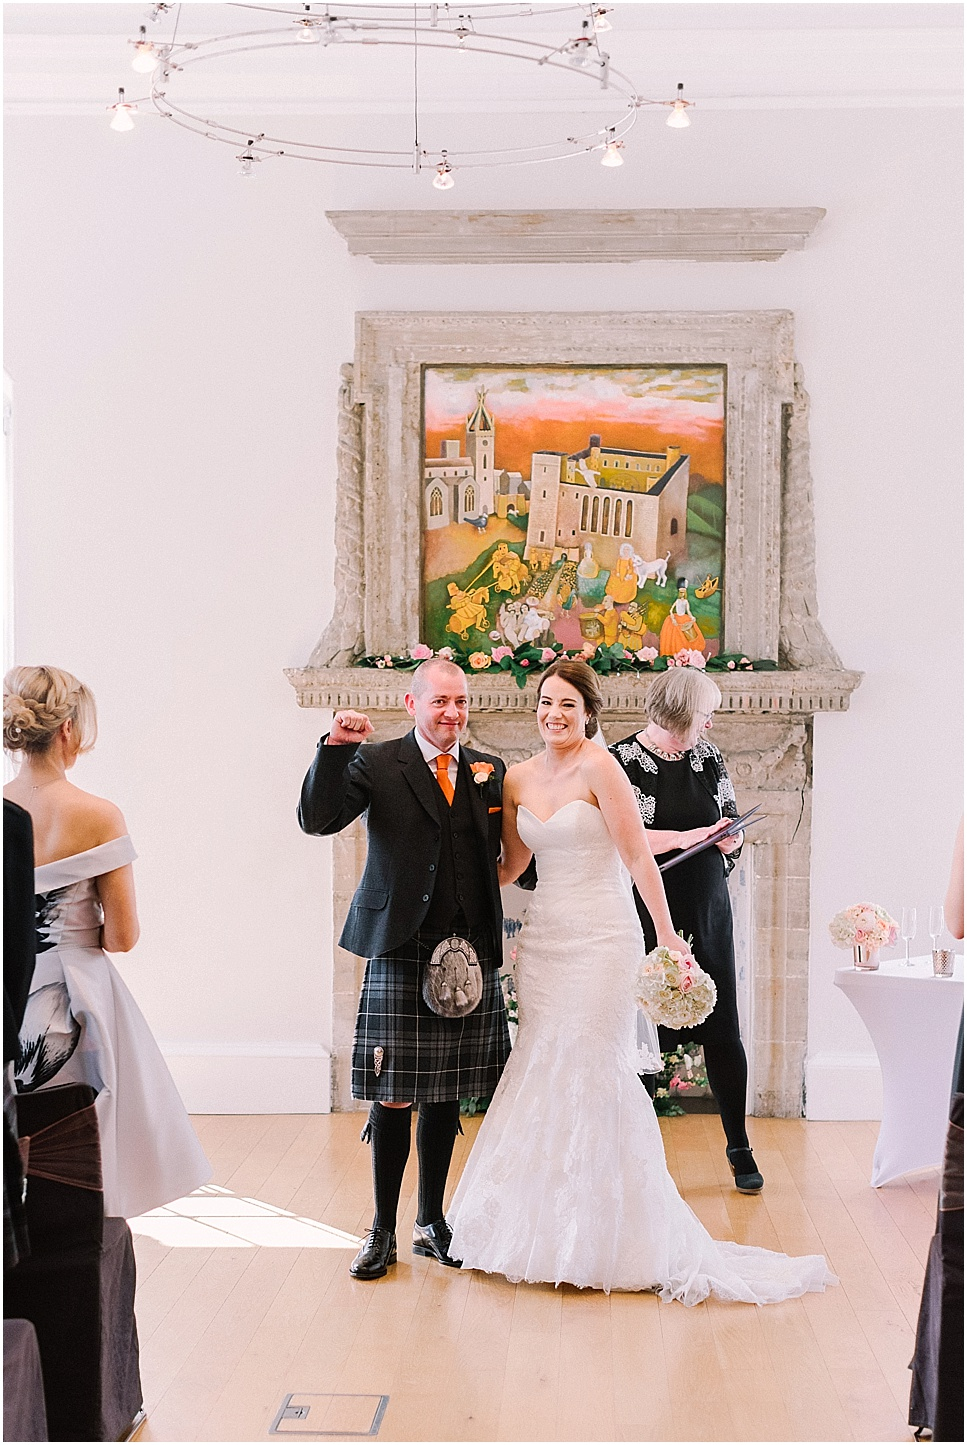 mareikemurray_wedding_photography_linlithgow_burgh_halls_047.jpg